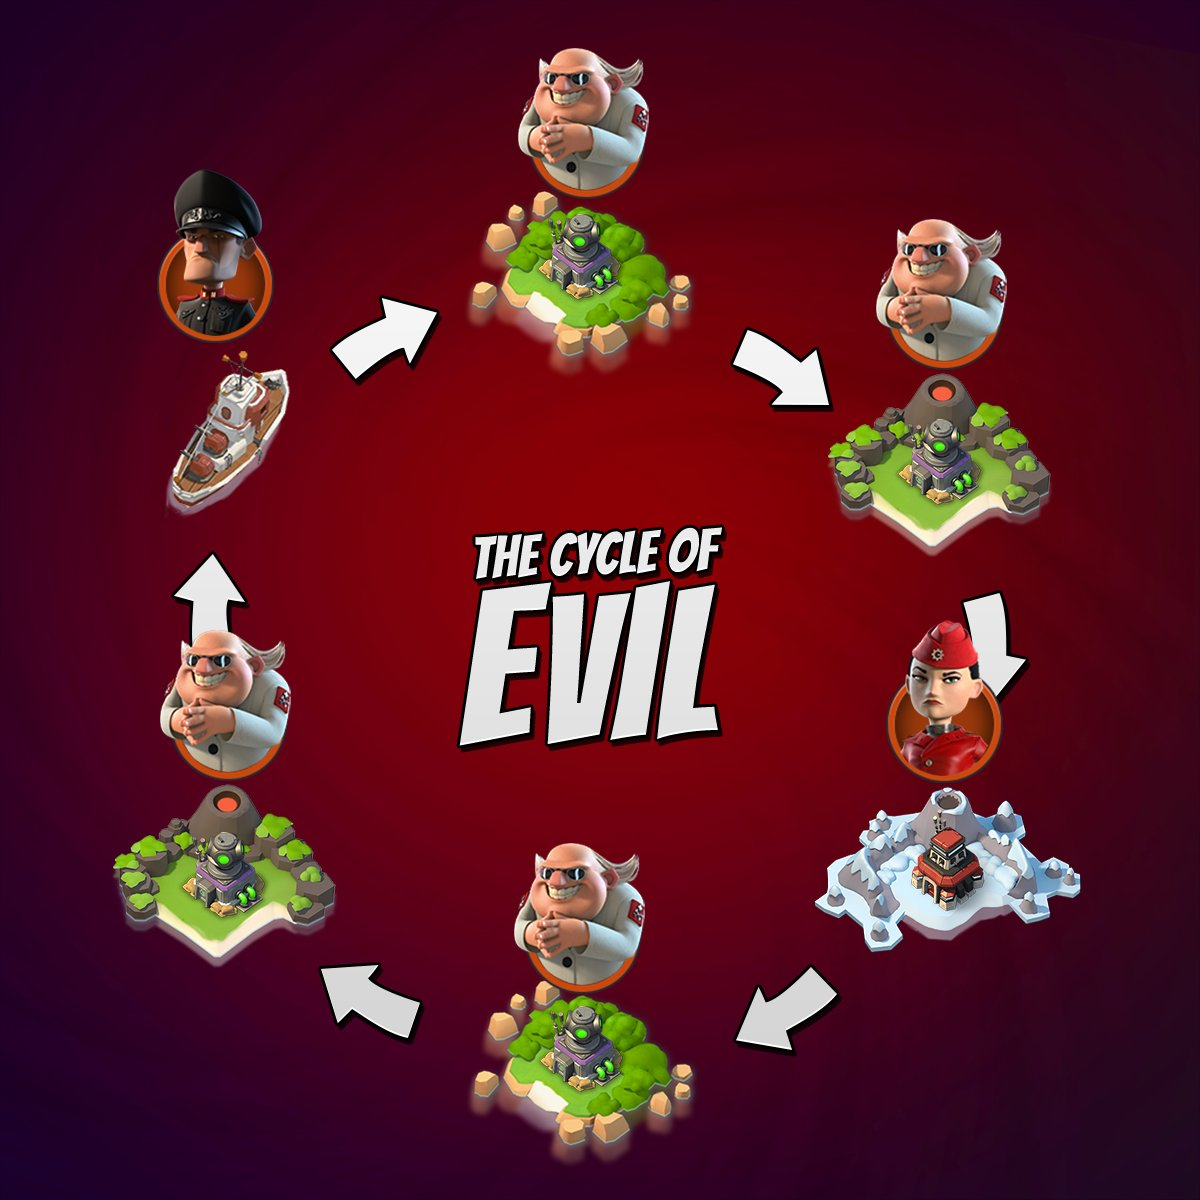 cycle of evil